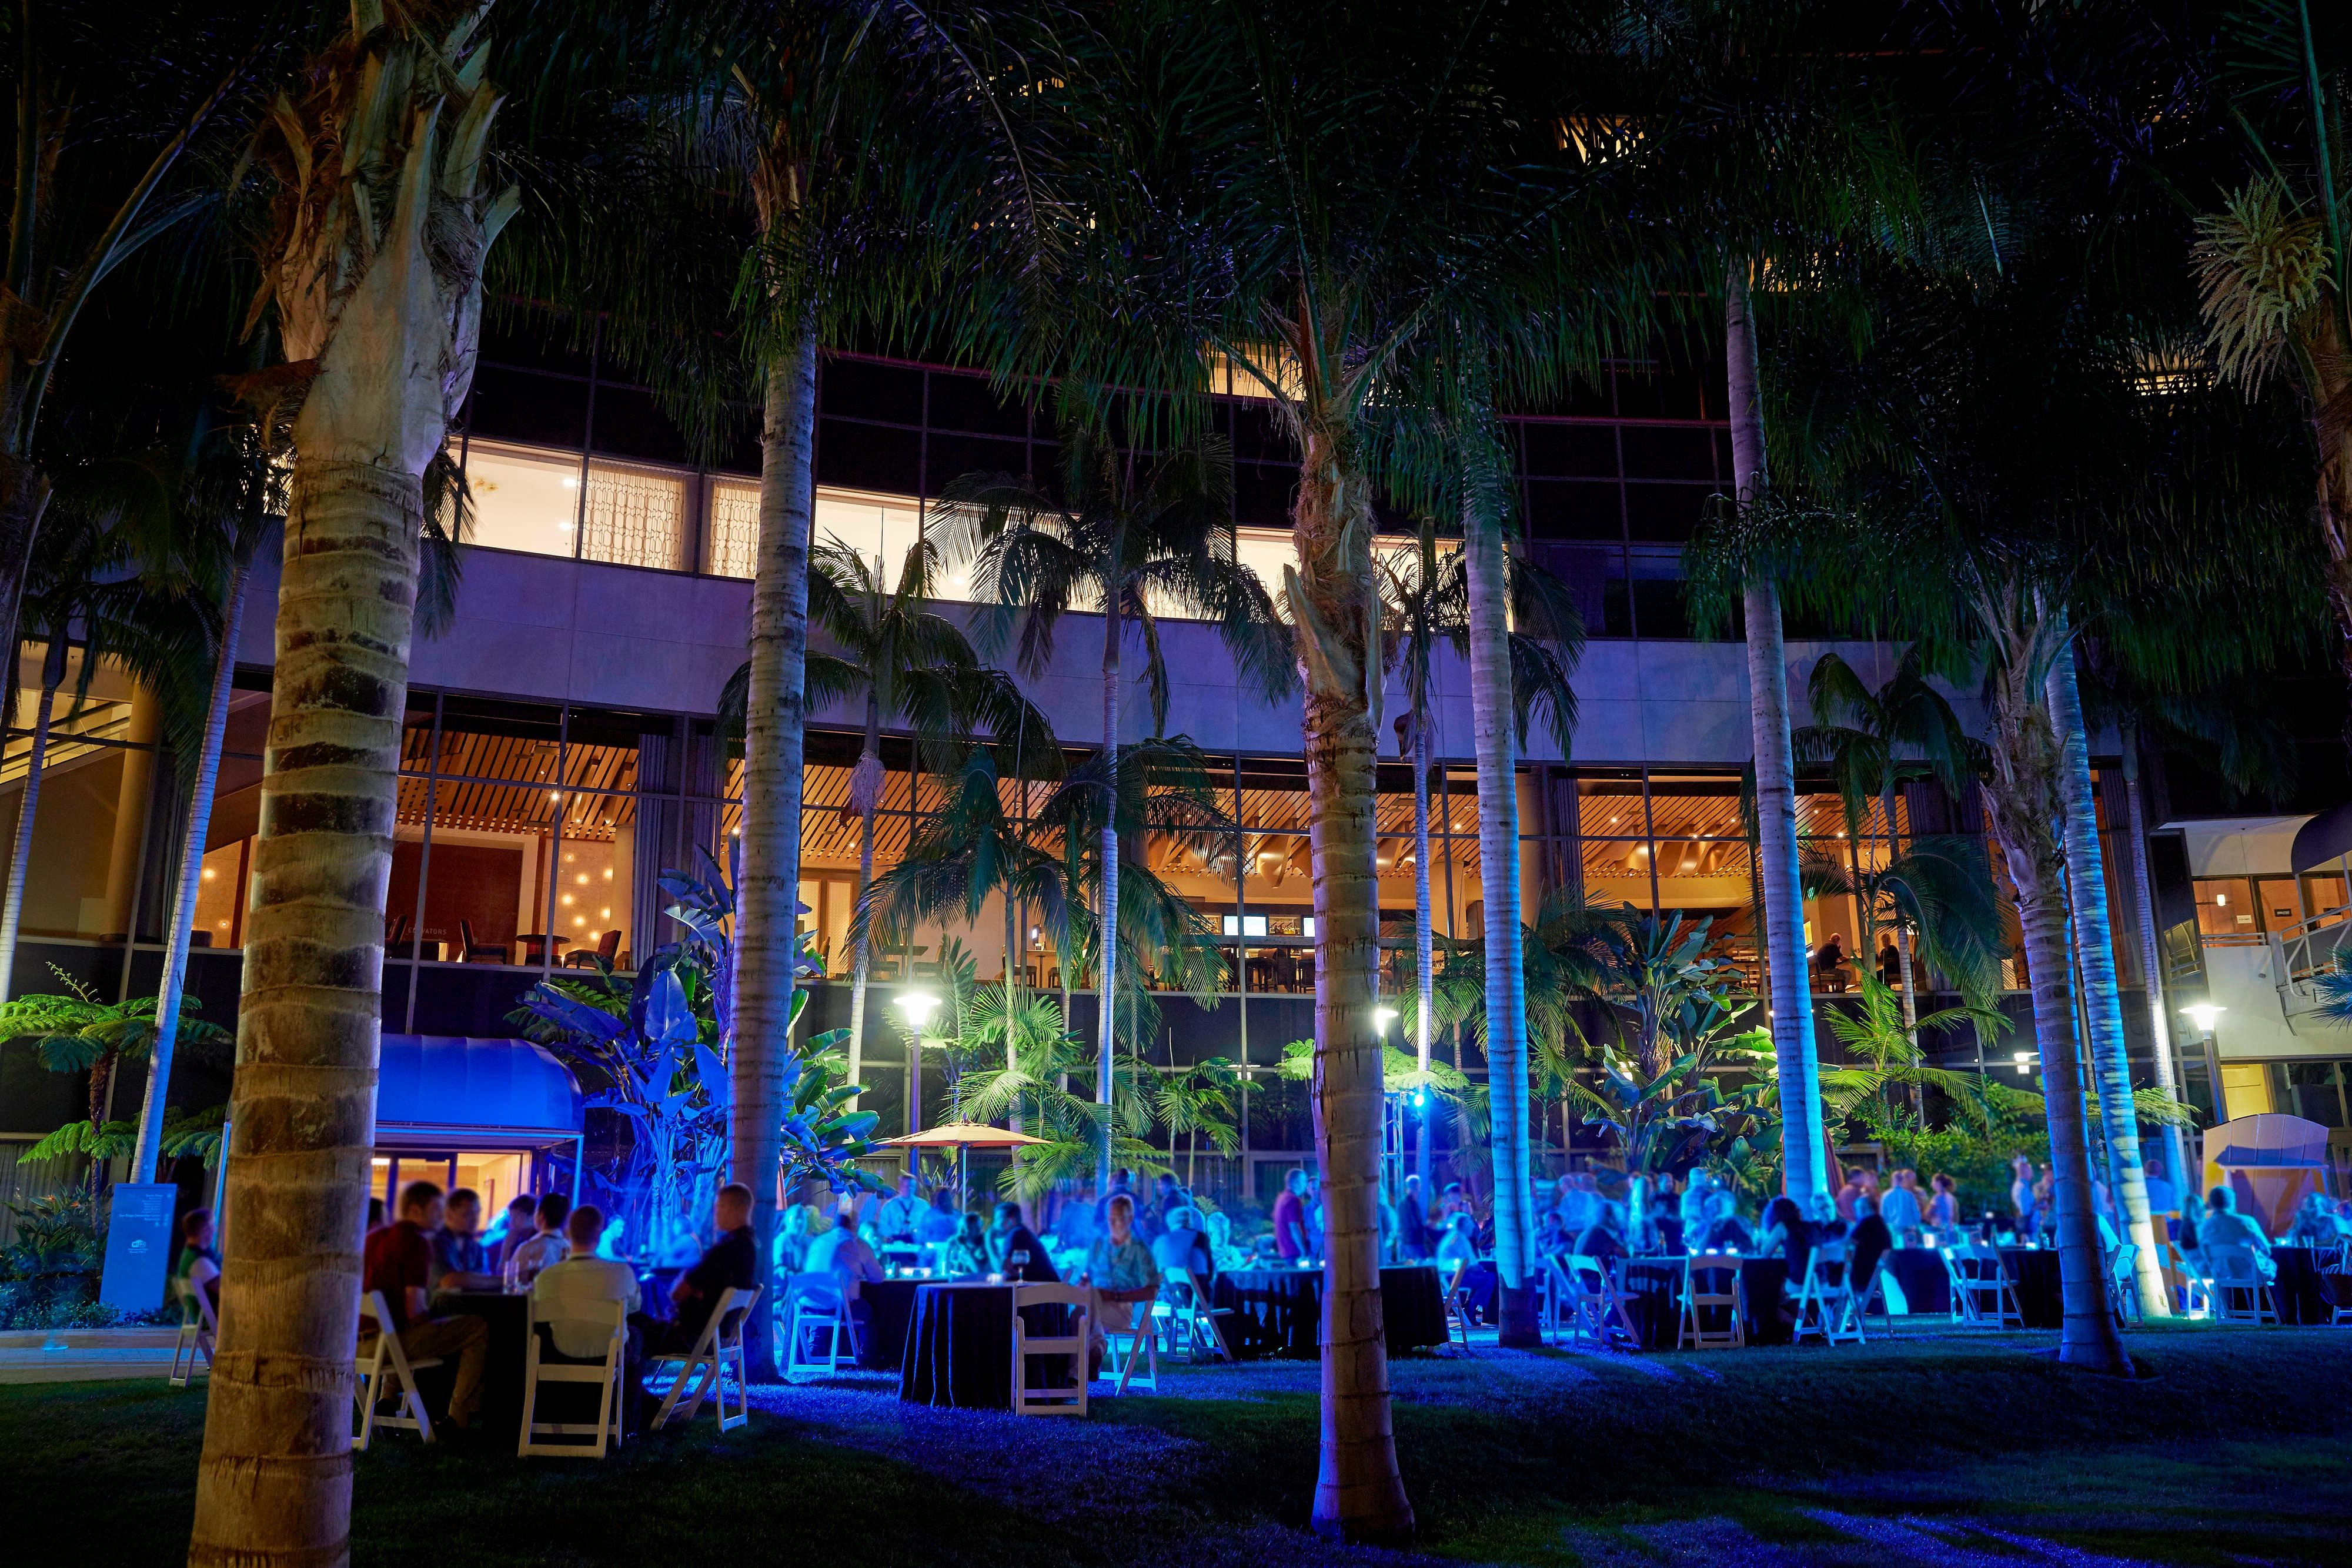 Evening Outdoor Events by the Pool